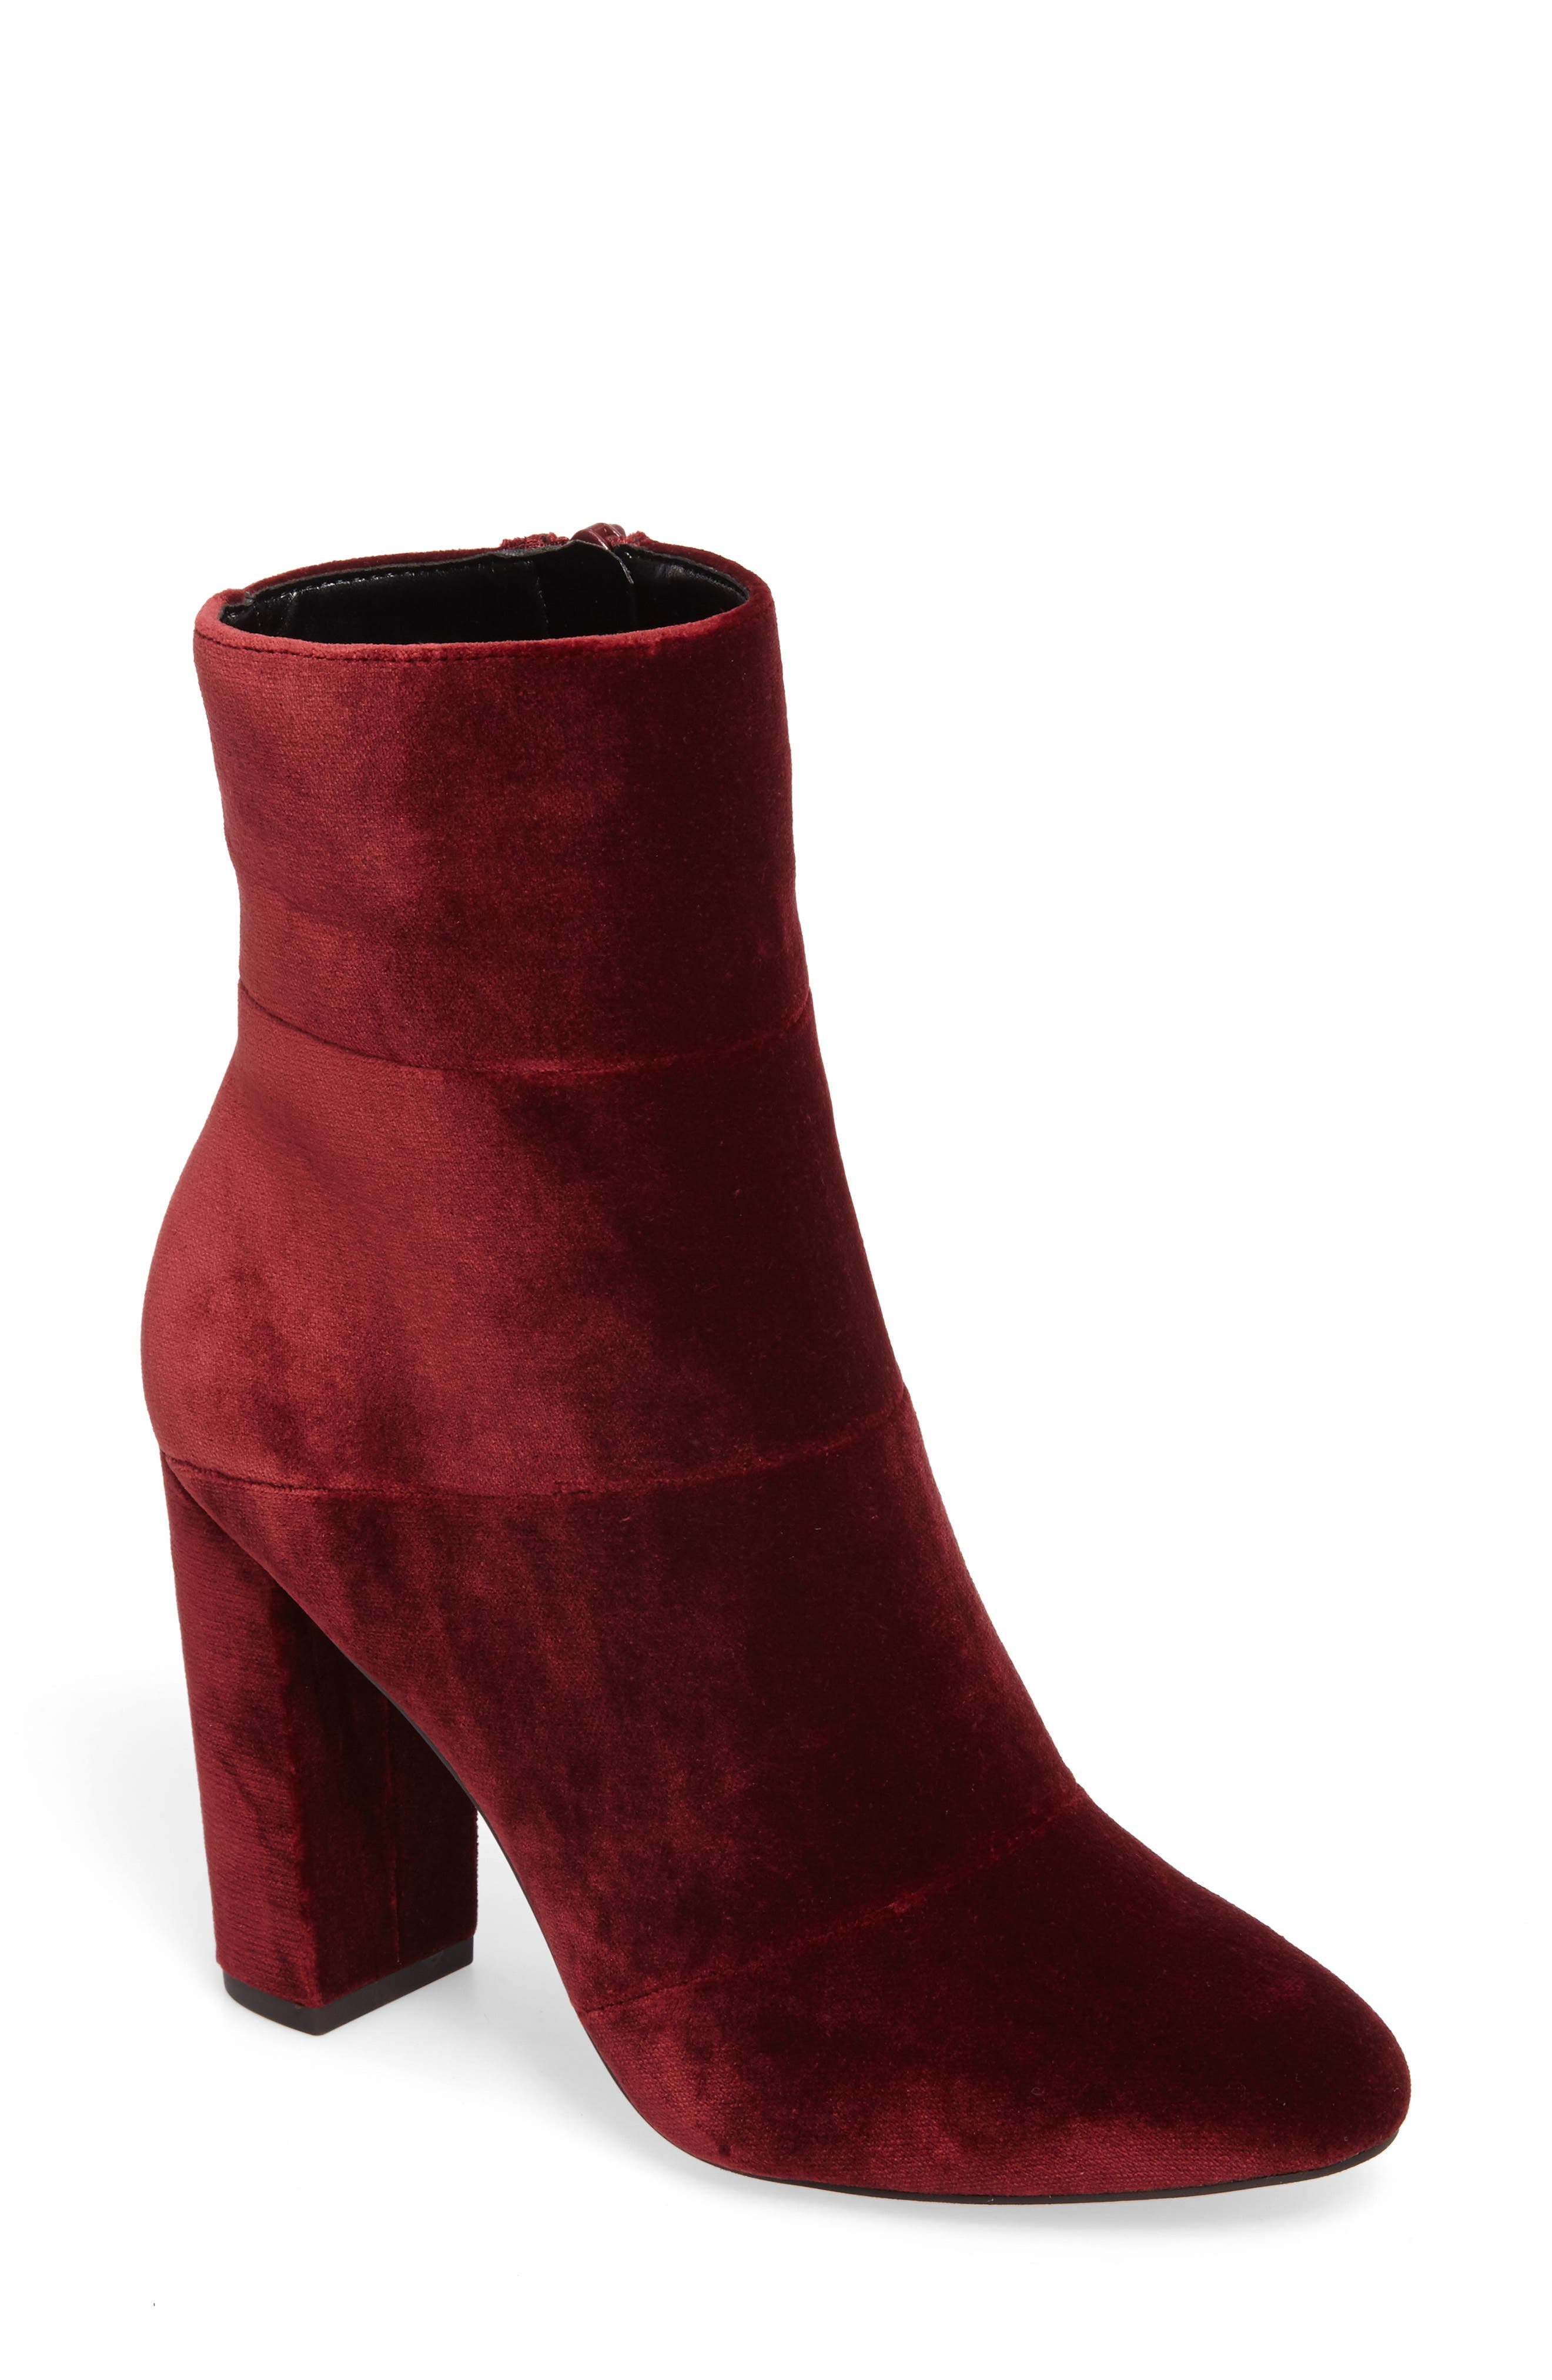 Alternate Image 1 Selected - BCBG Coral Bootie (Women)